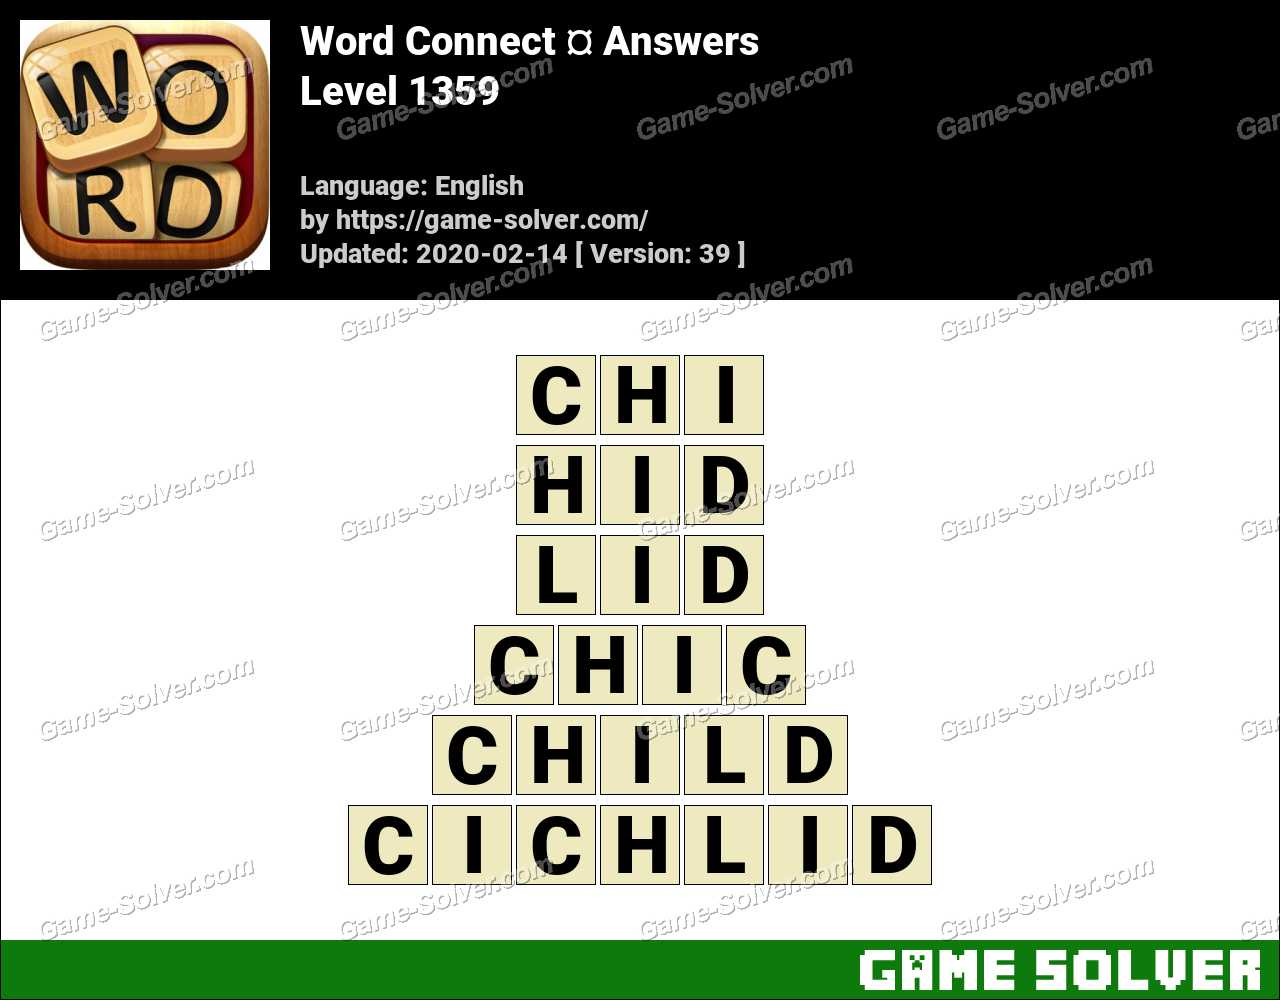 Word Connect Level 1359 Answers